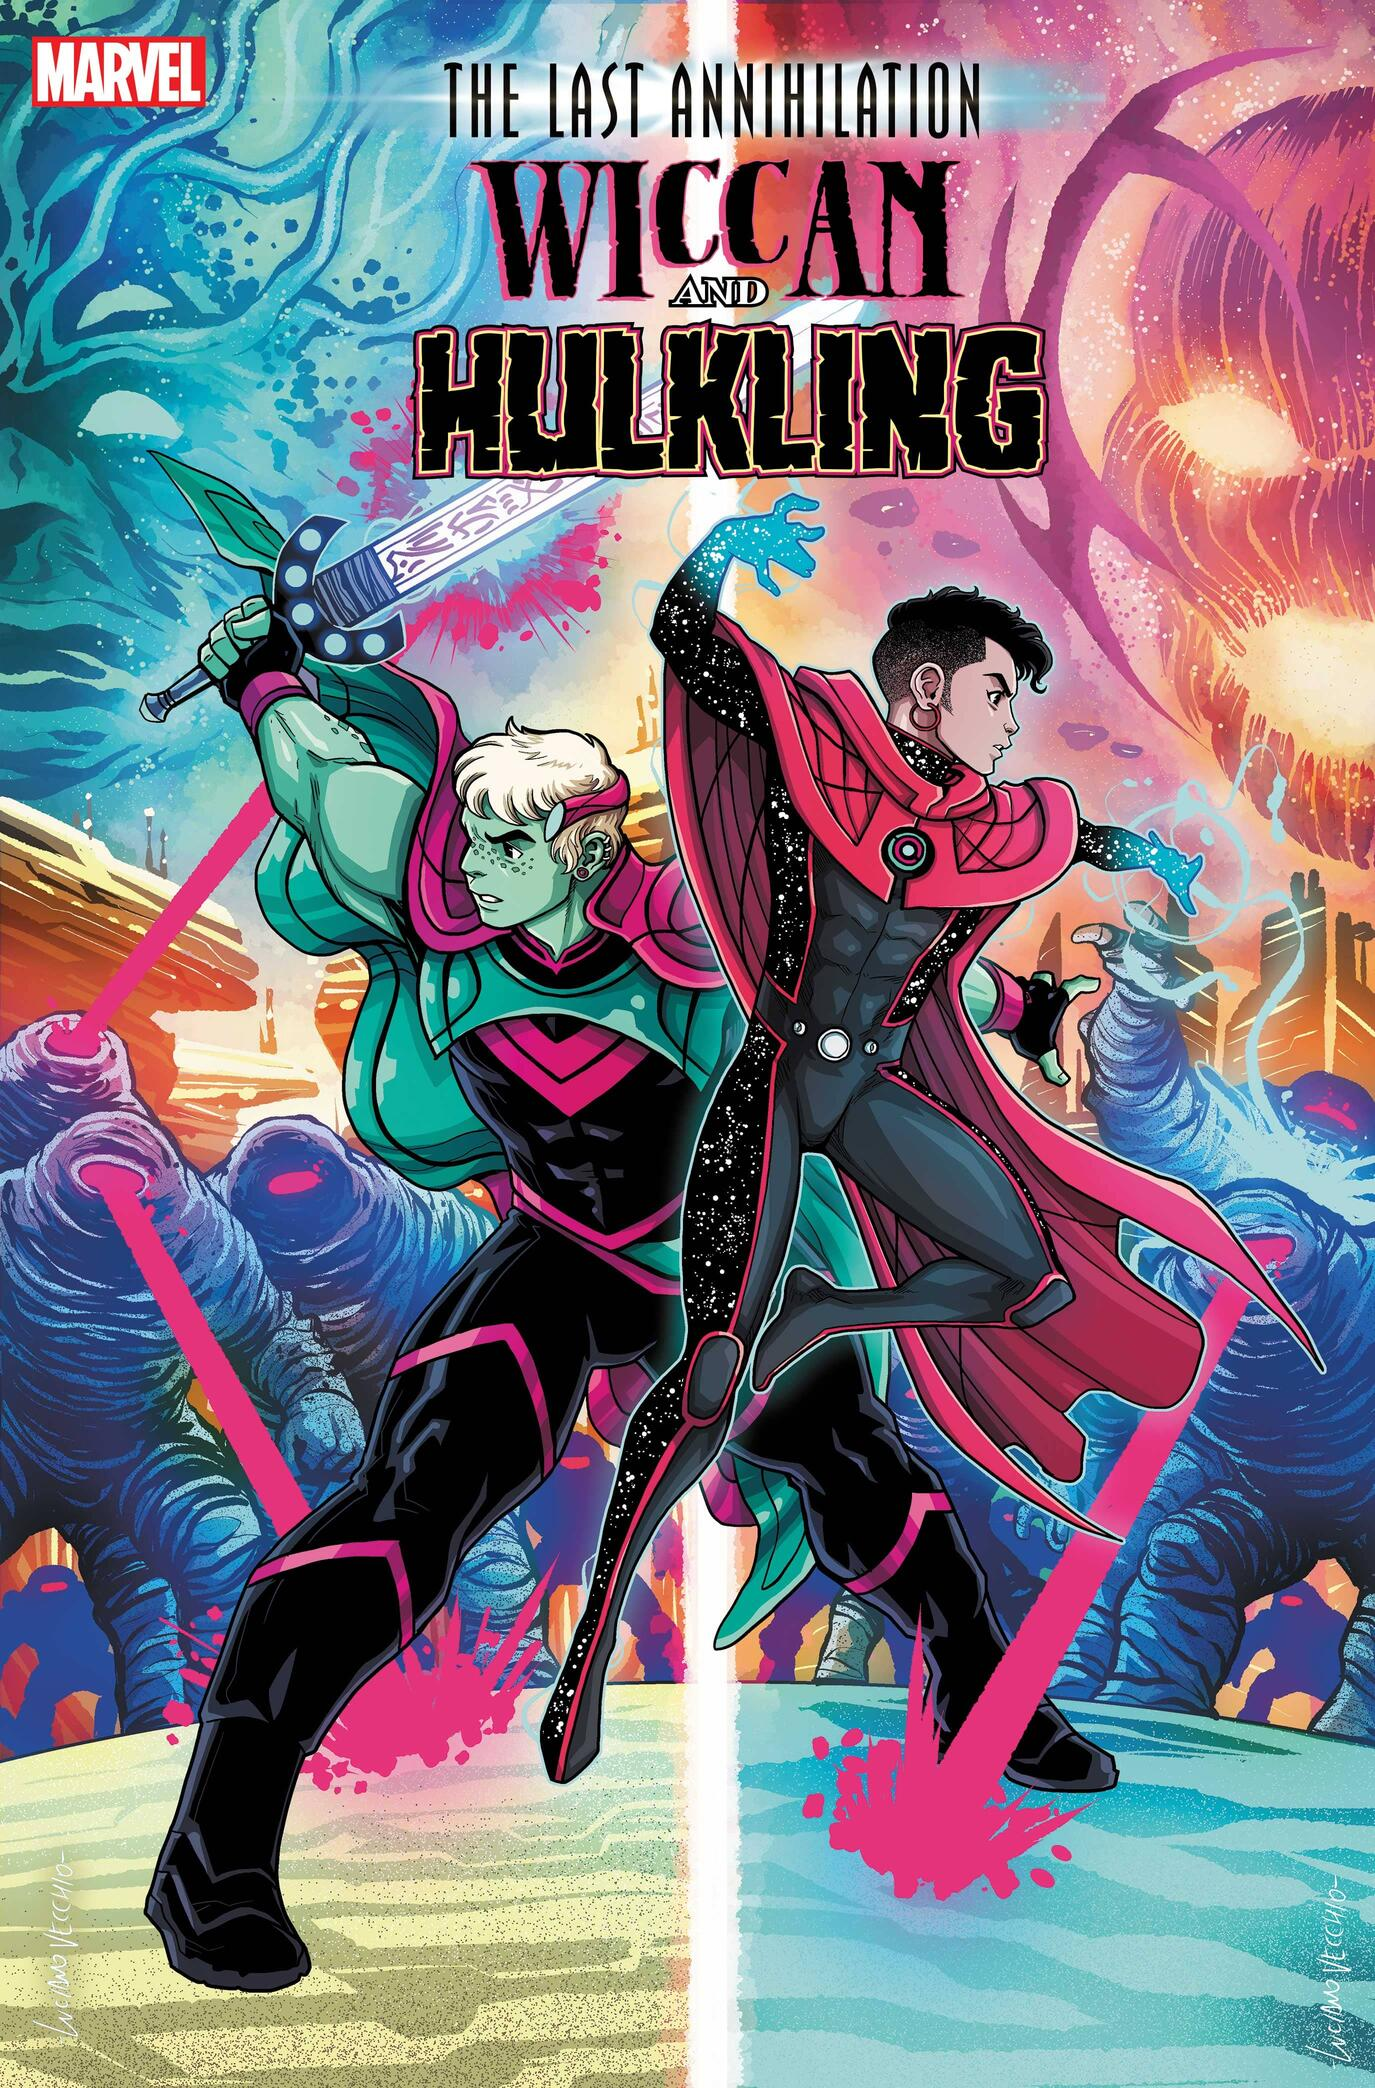 LAST ANNIHILATION: WICCAN & HULKLING #1 cover by Luciano Vecchio